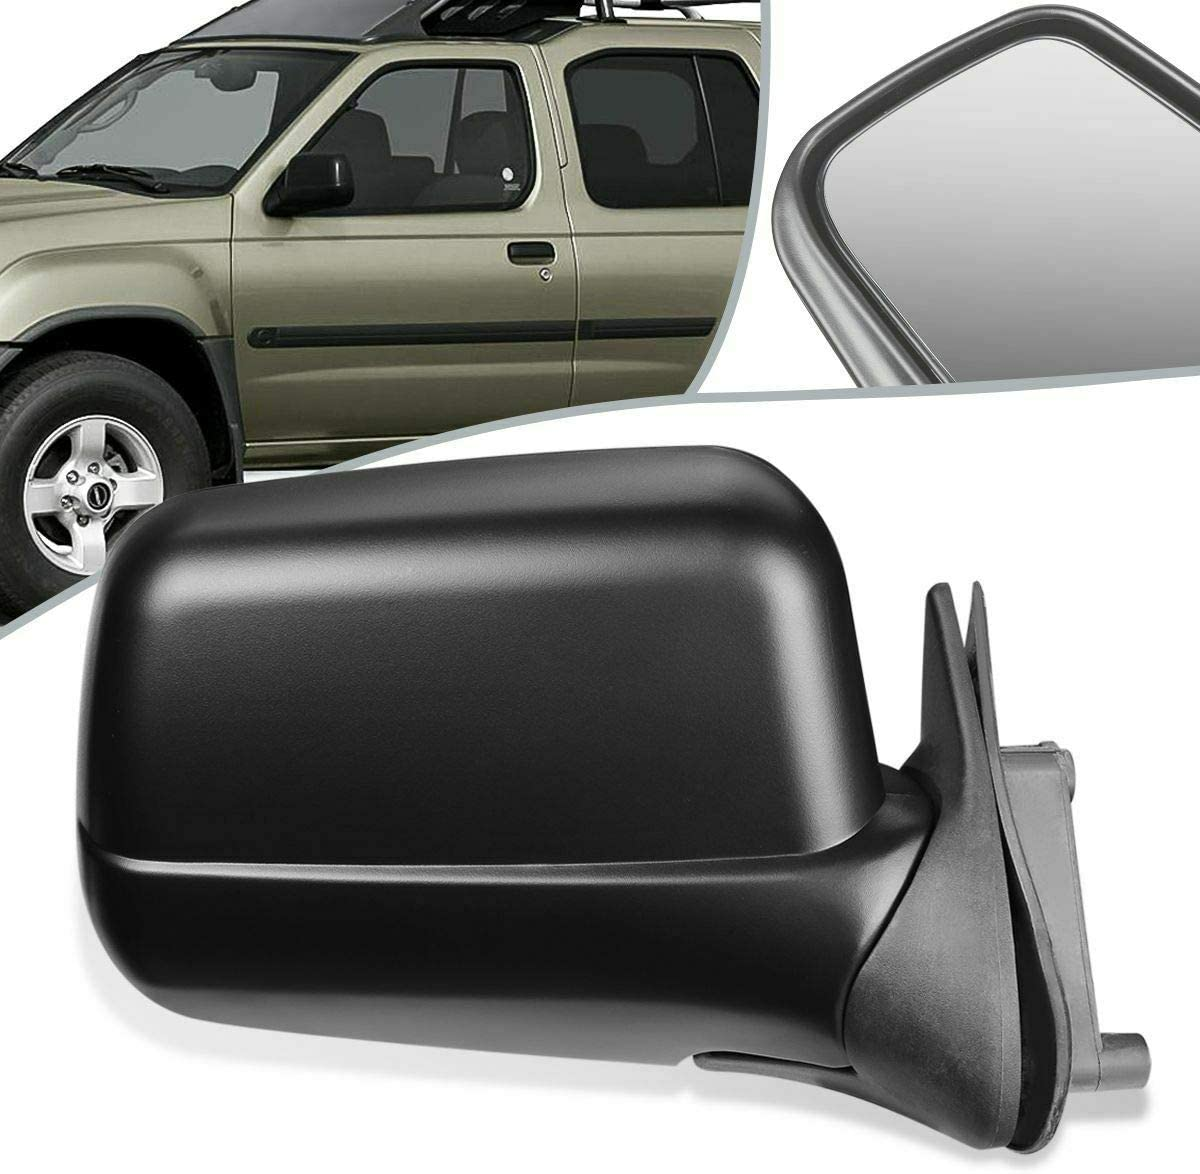 JUN Compatible with 1998-2004 Nissan Style Free Shipping Cheap Bargain Gift View Powered Side OE Ranking TOP17